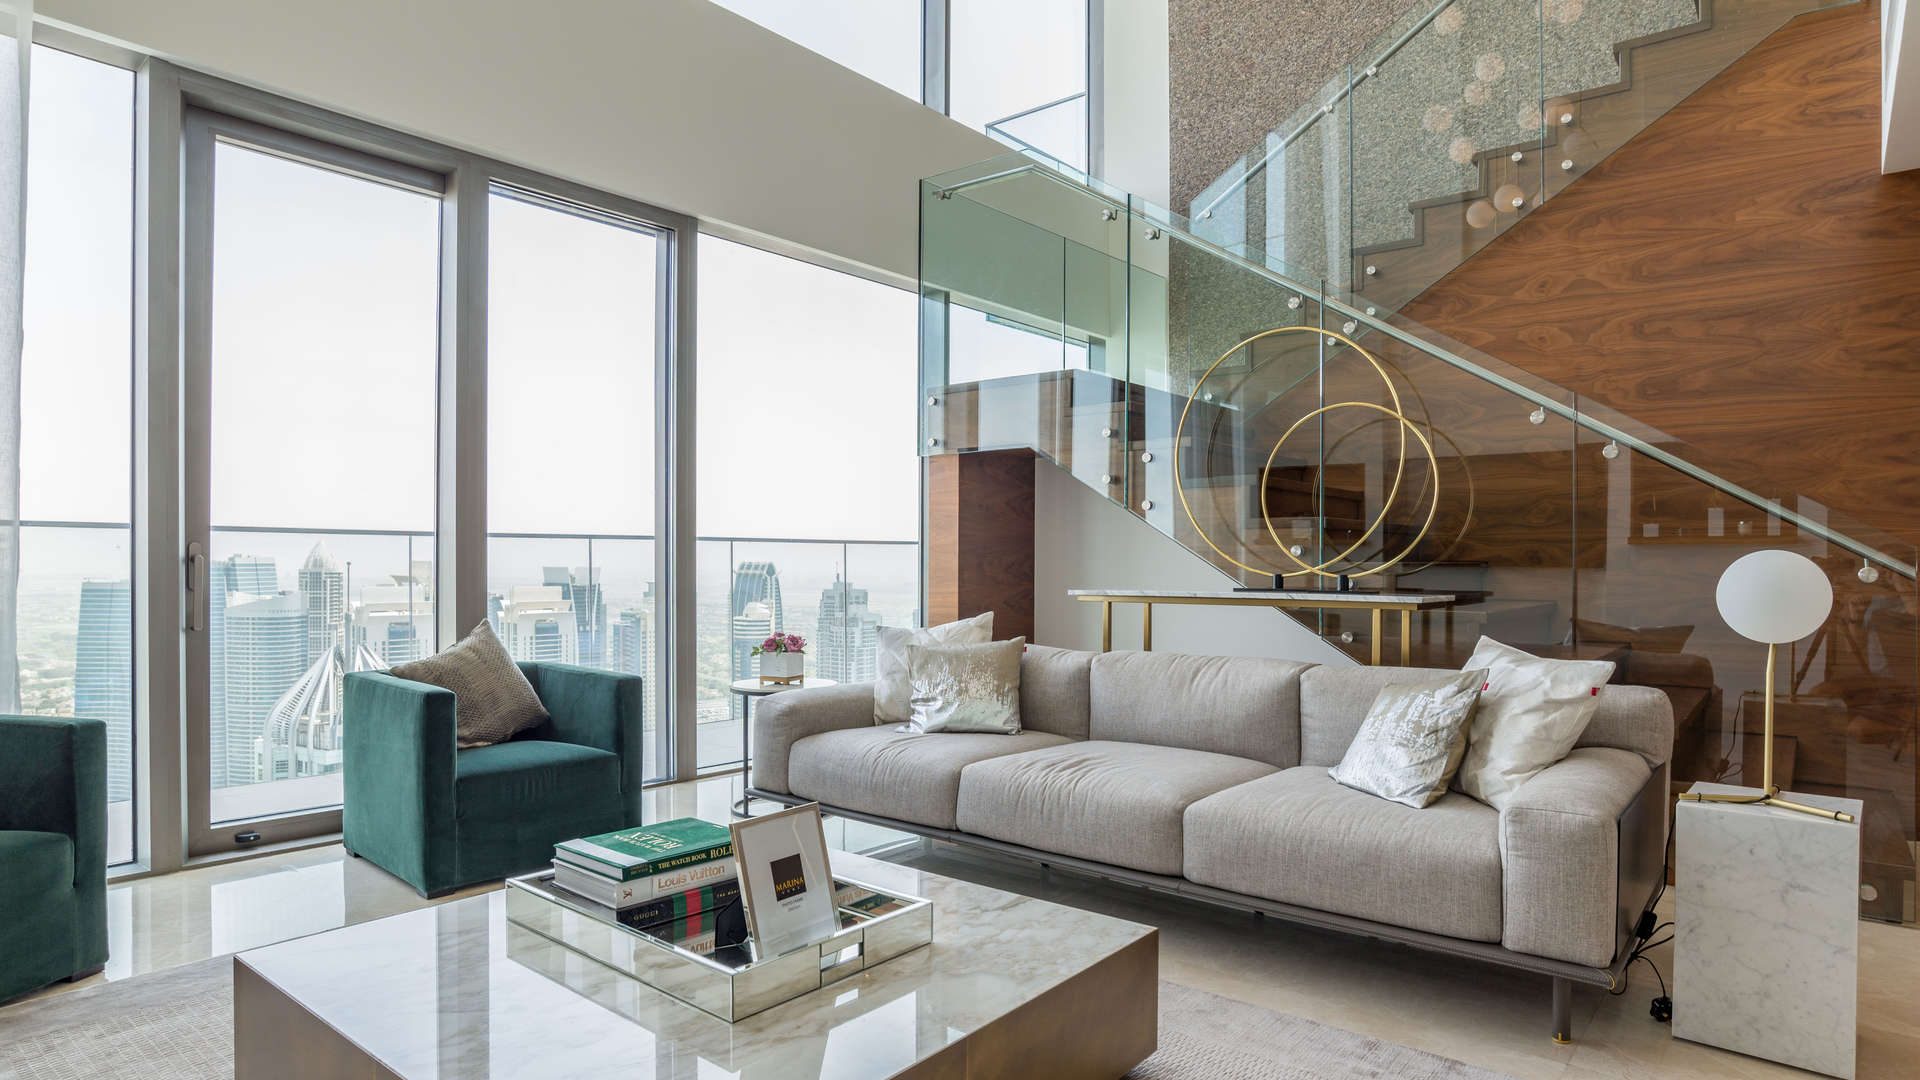 Apartments for Rent in Dubai, Furnished Rental Apartments